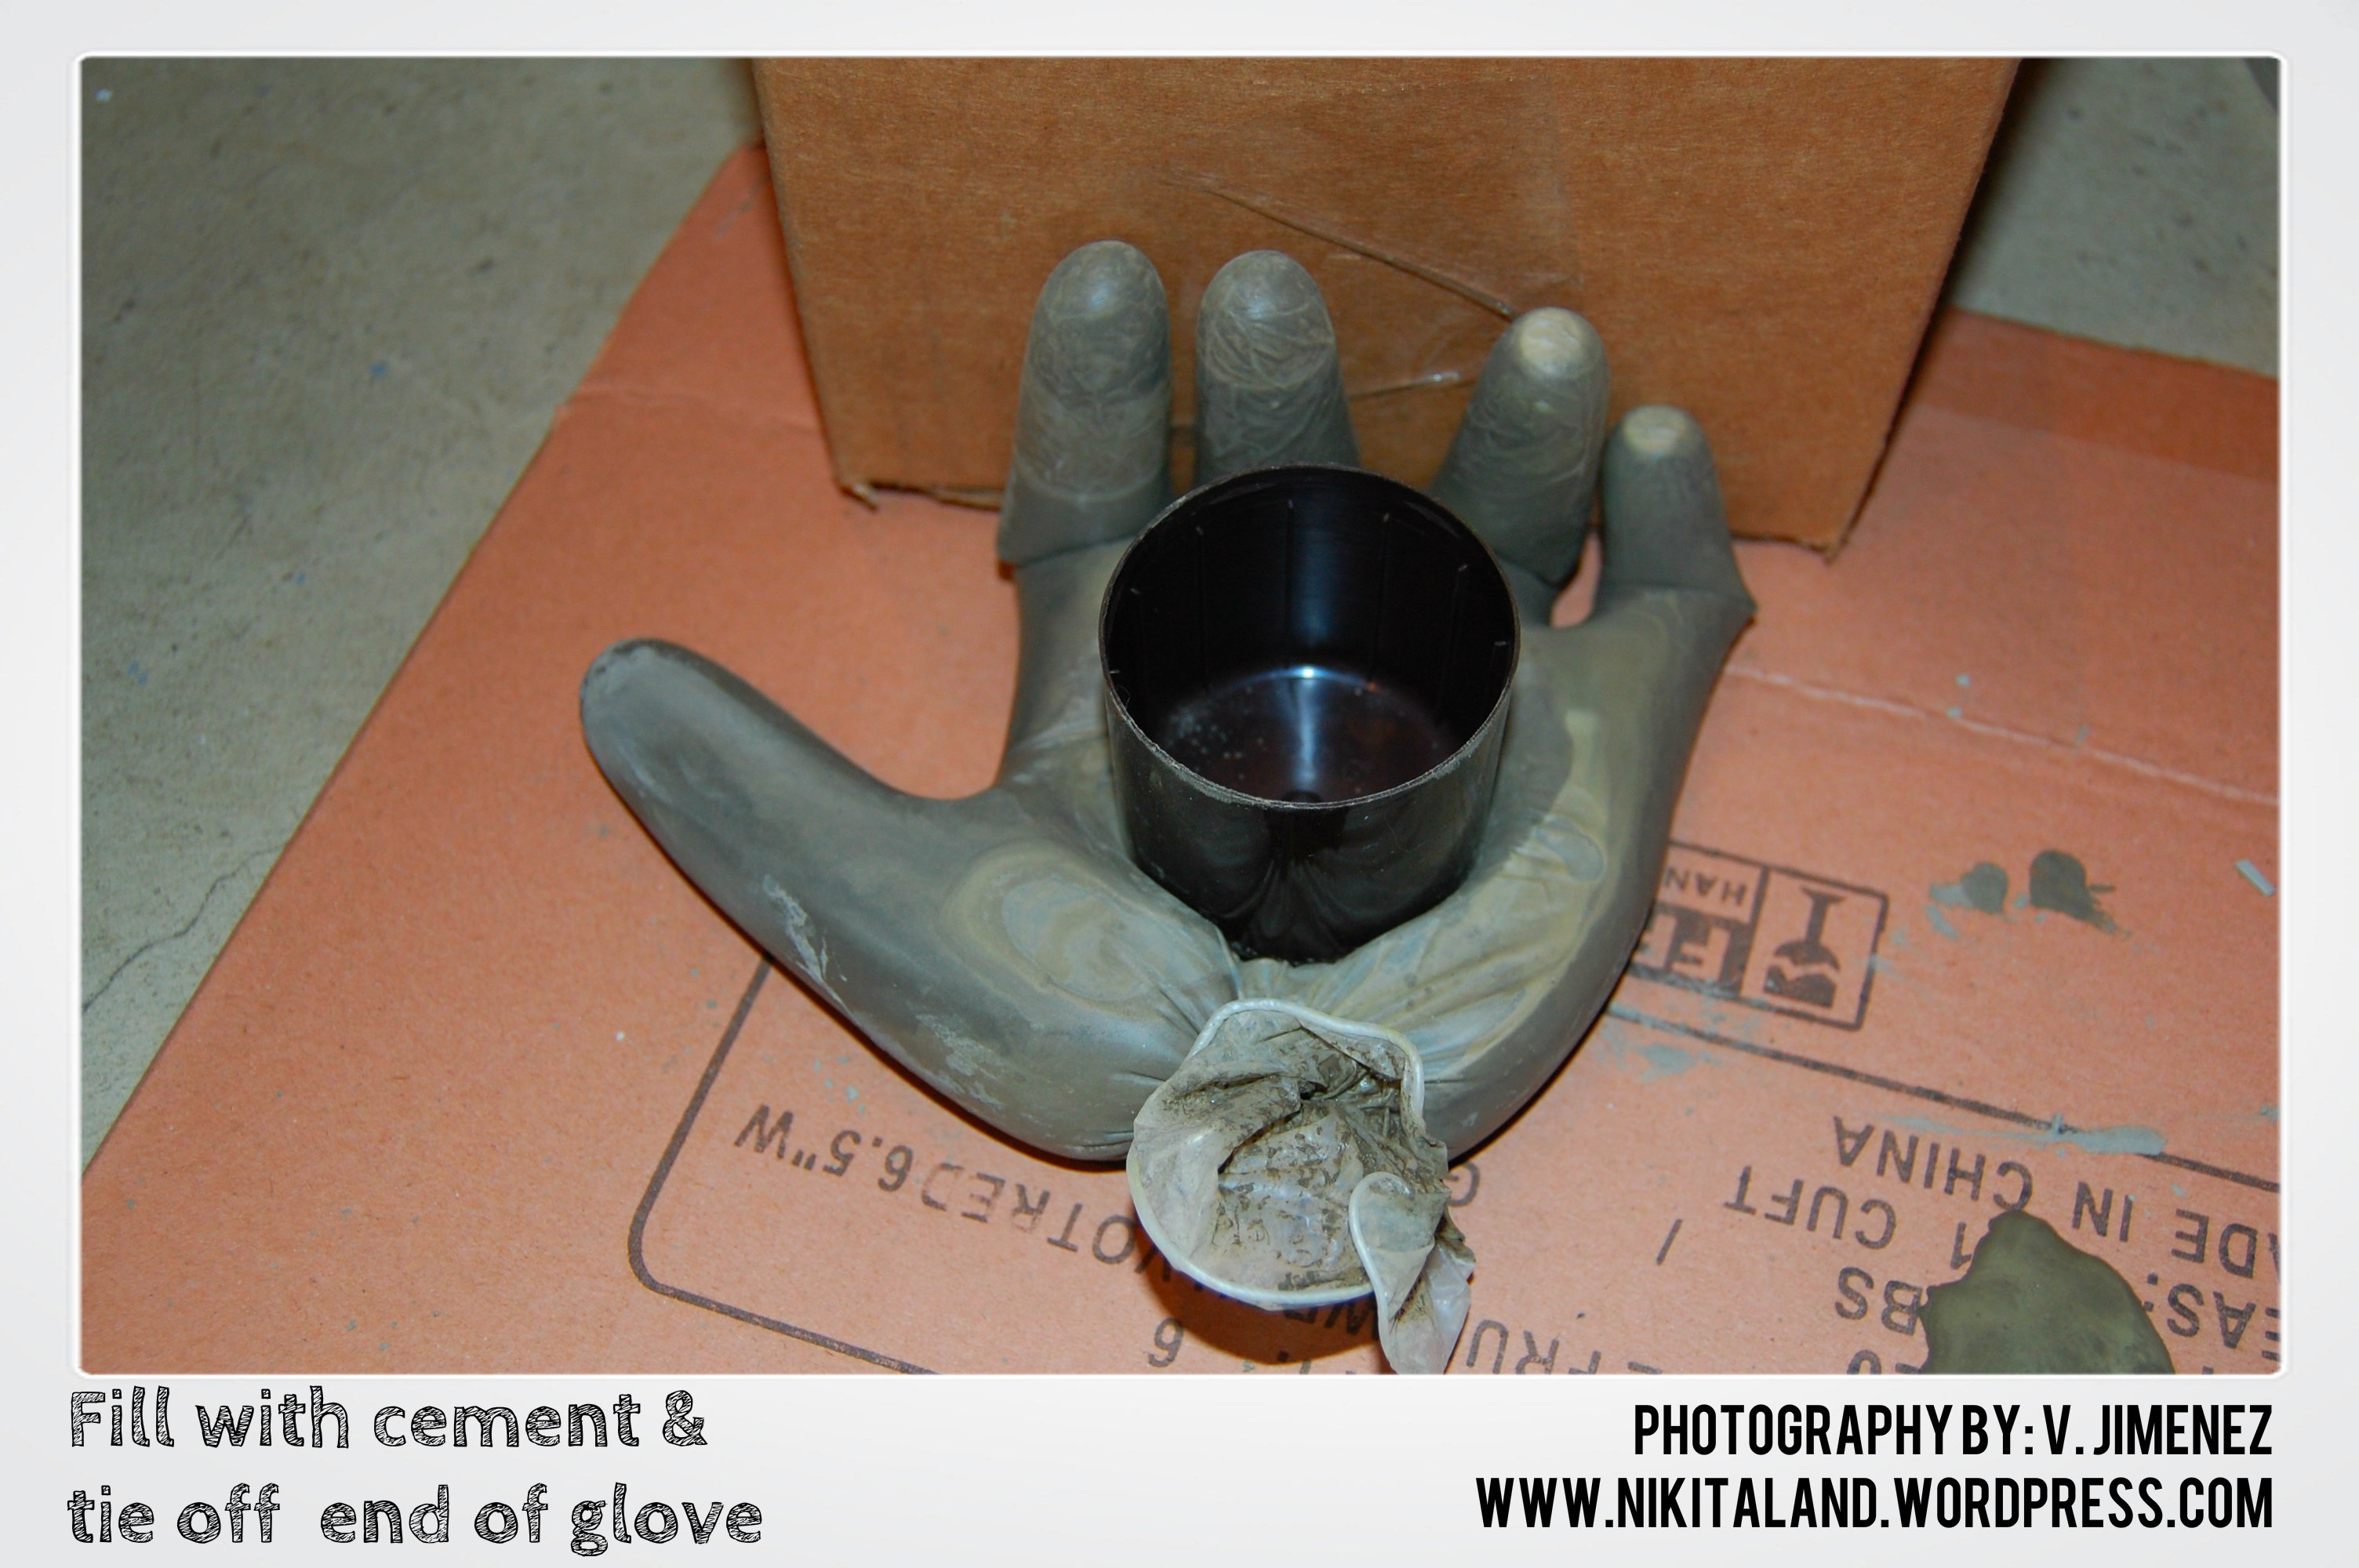 Diy cement hand tealight holder nikitaland for Craft cement mix